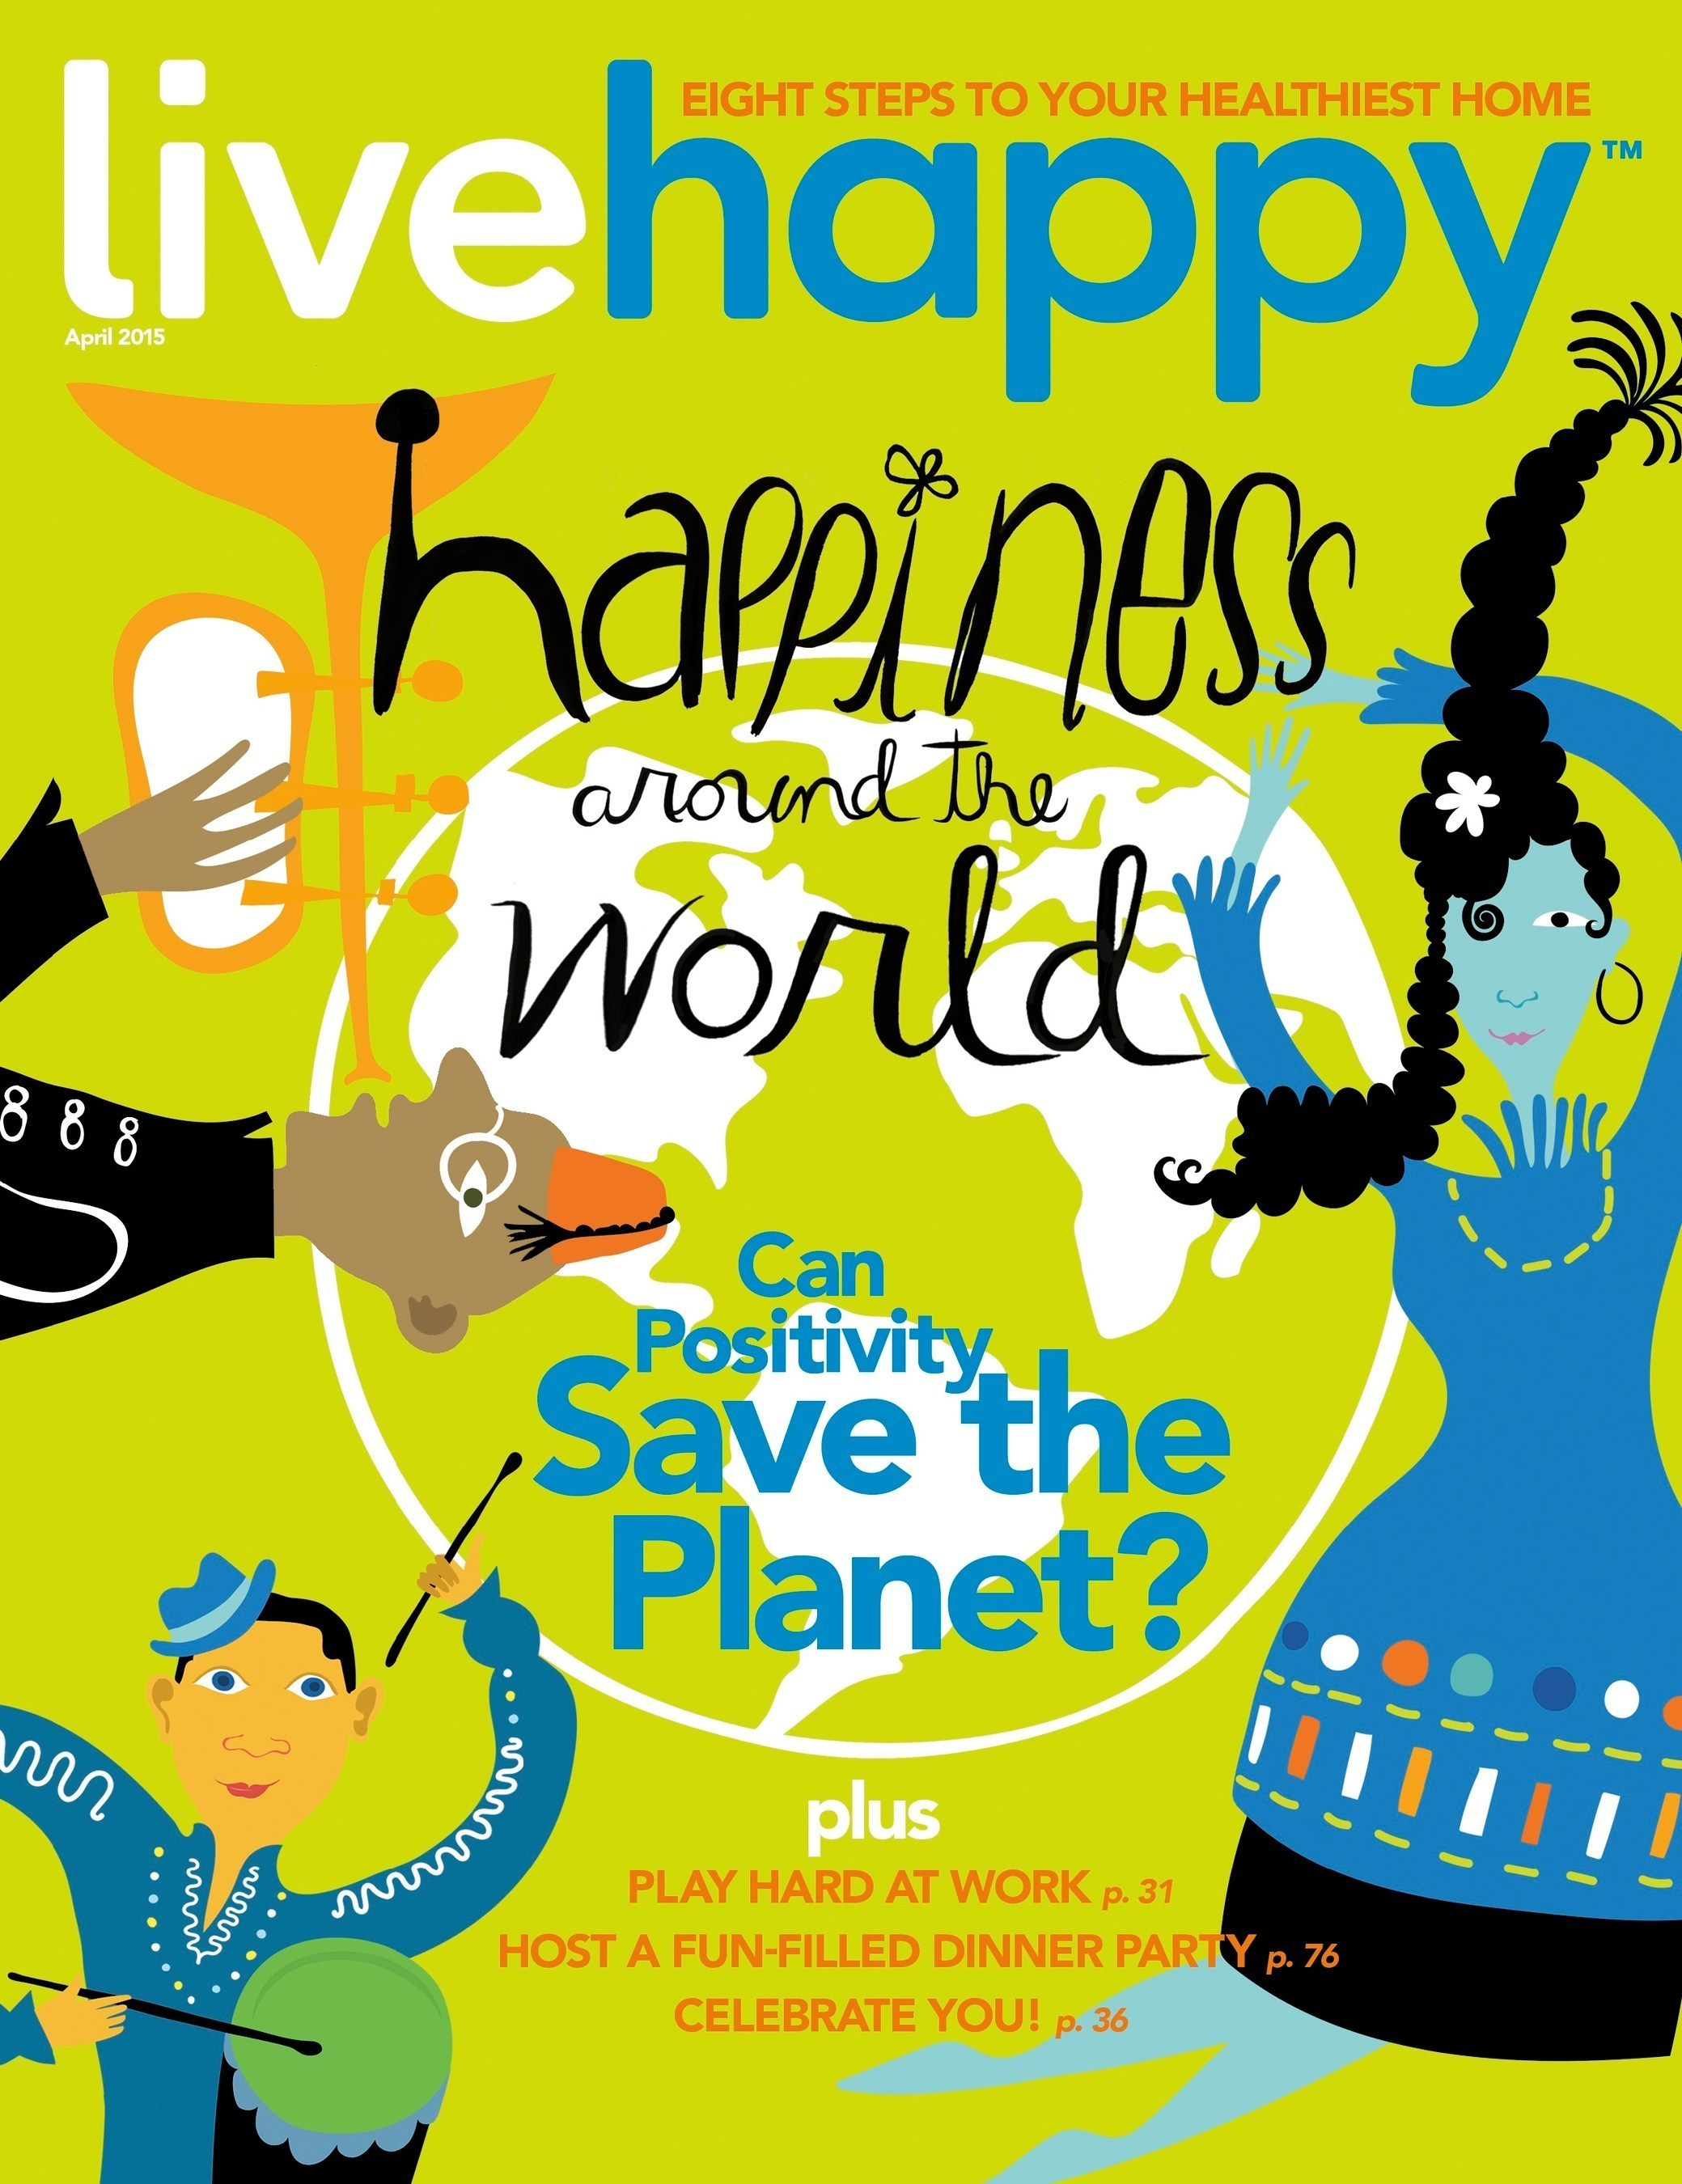 How Do You Share Happiness? Live Happy's March/April Issue Encourages All to Be a Part of the Happiness Movement and Make the World A Better Place via #HappyActs